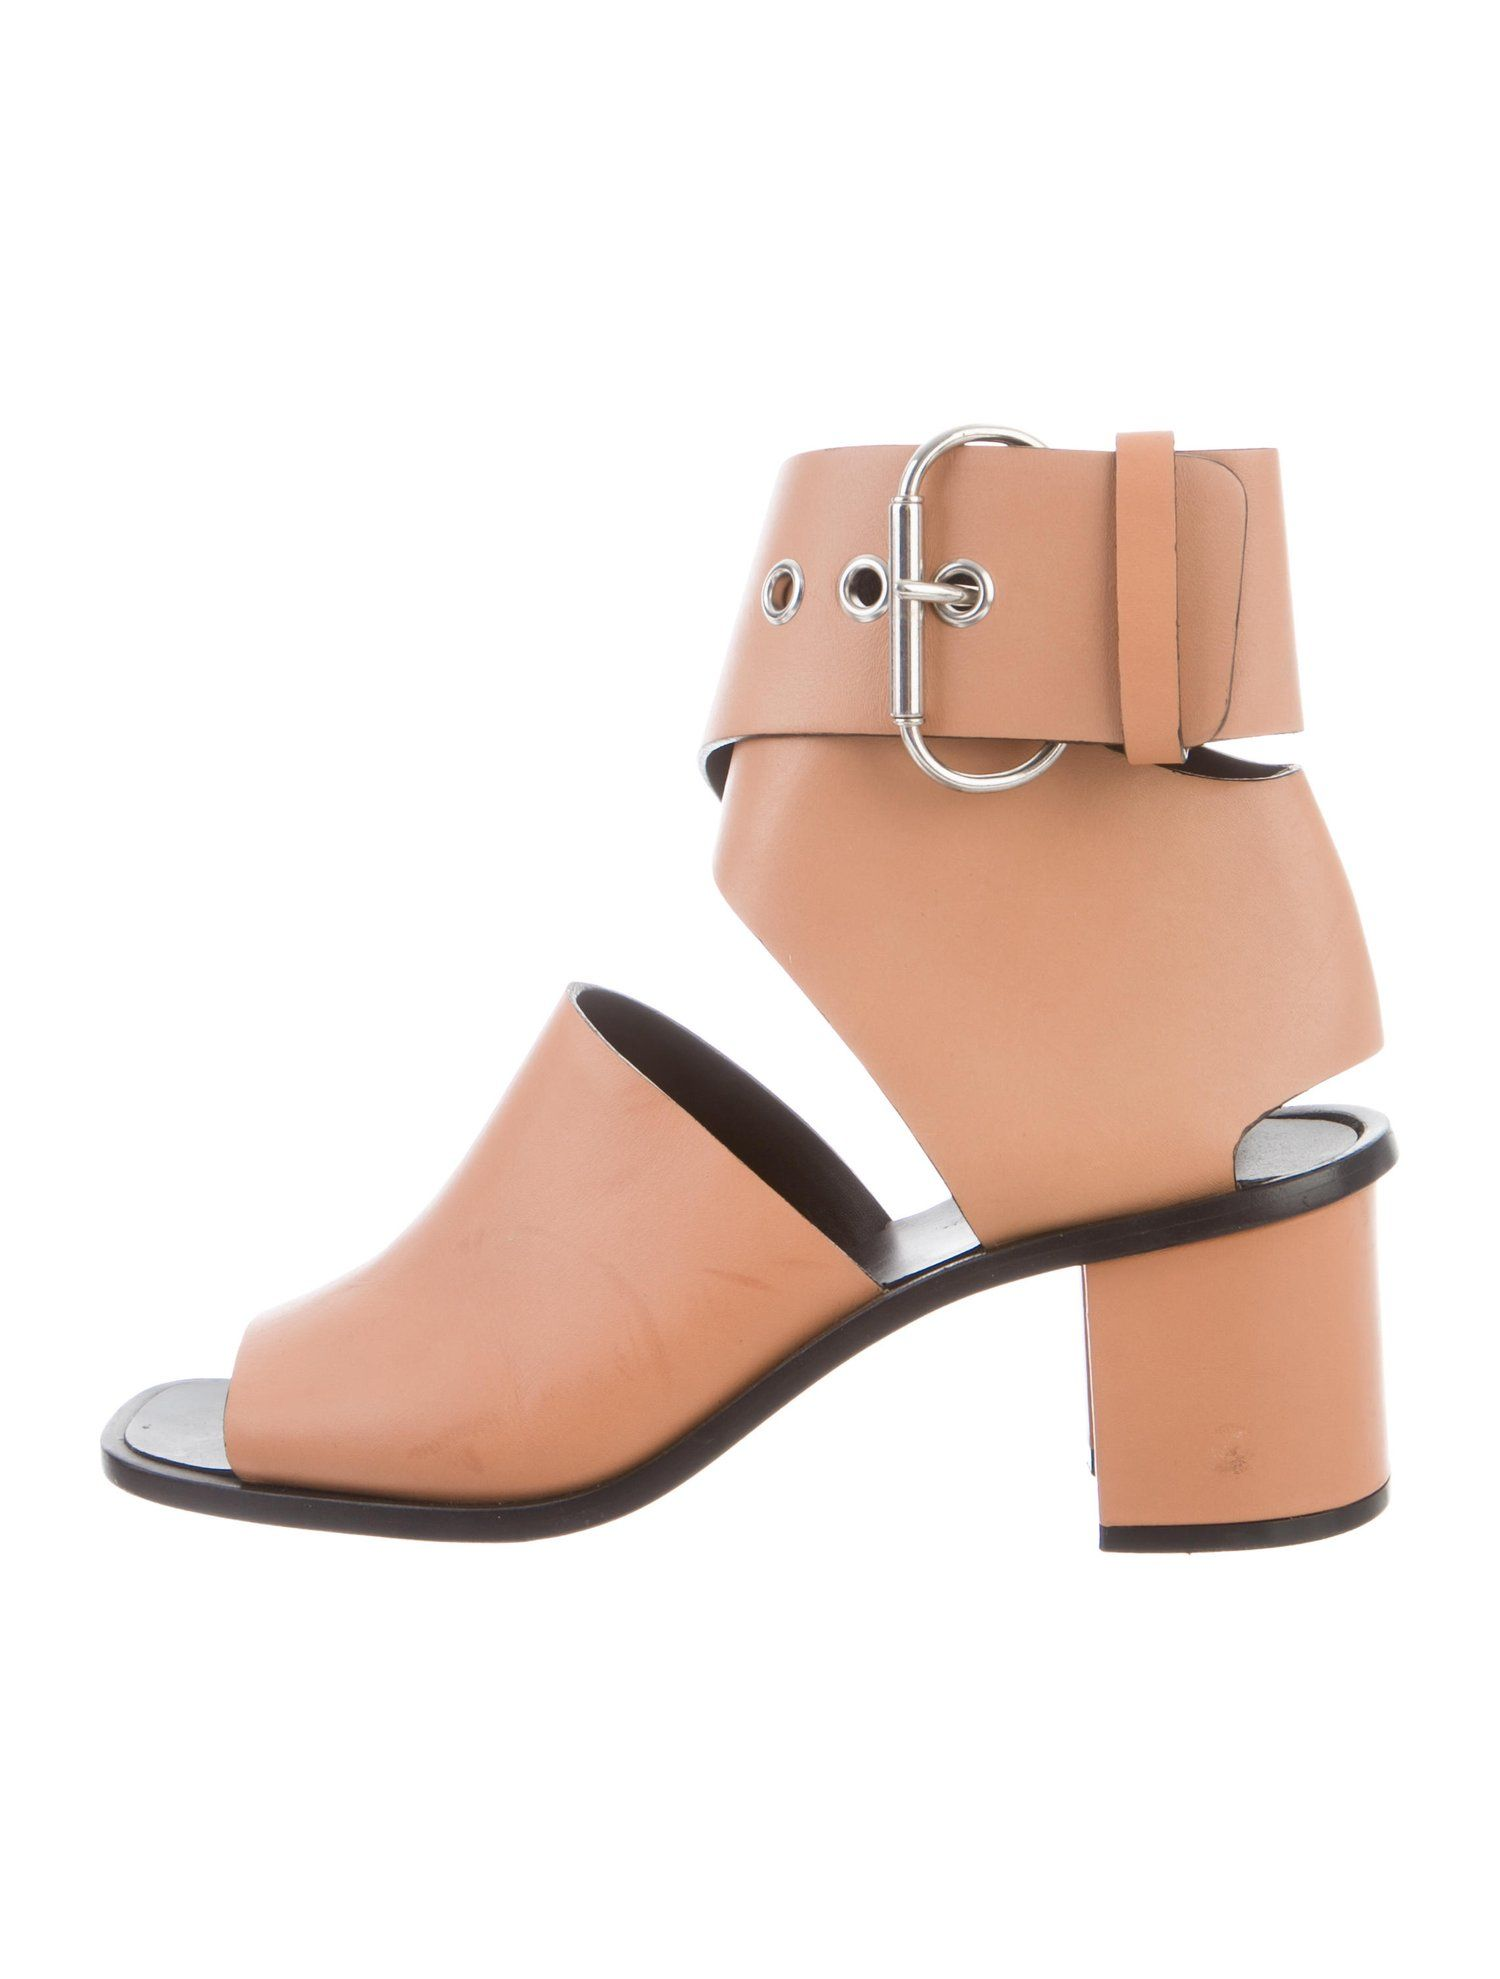 0eae0cee6b1187 C¨¦line Leather Ankle Strap Sandals  Leather  line  Ankle